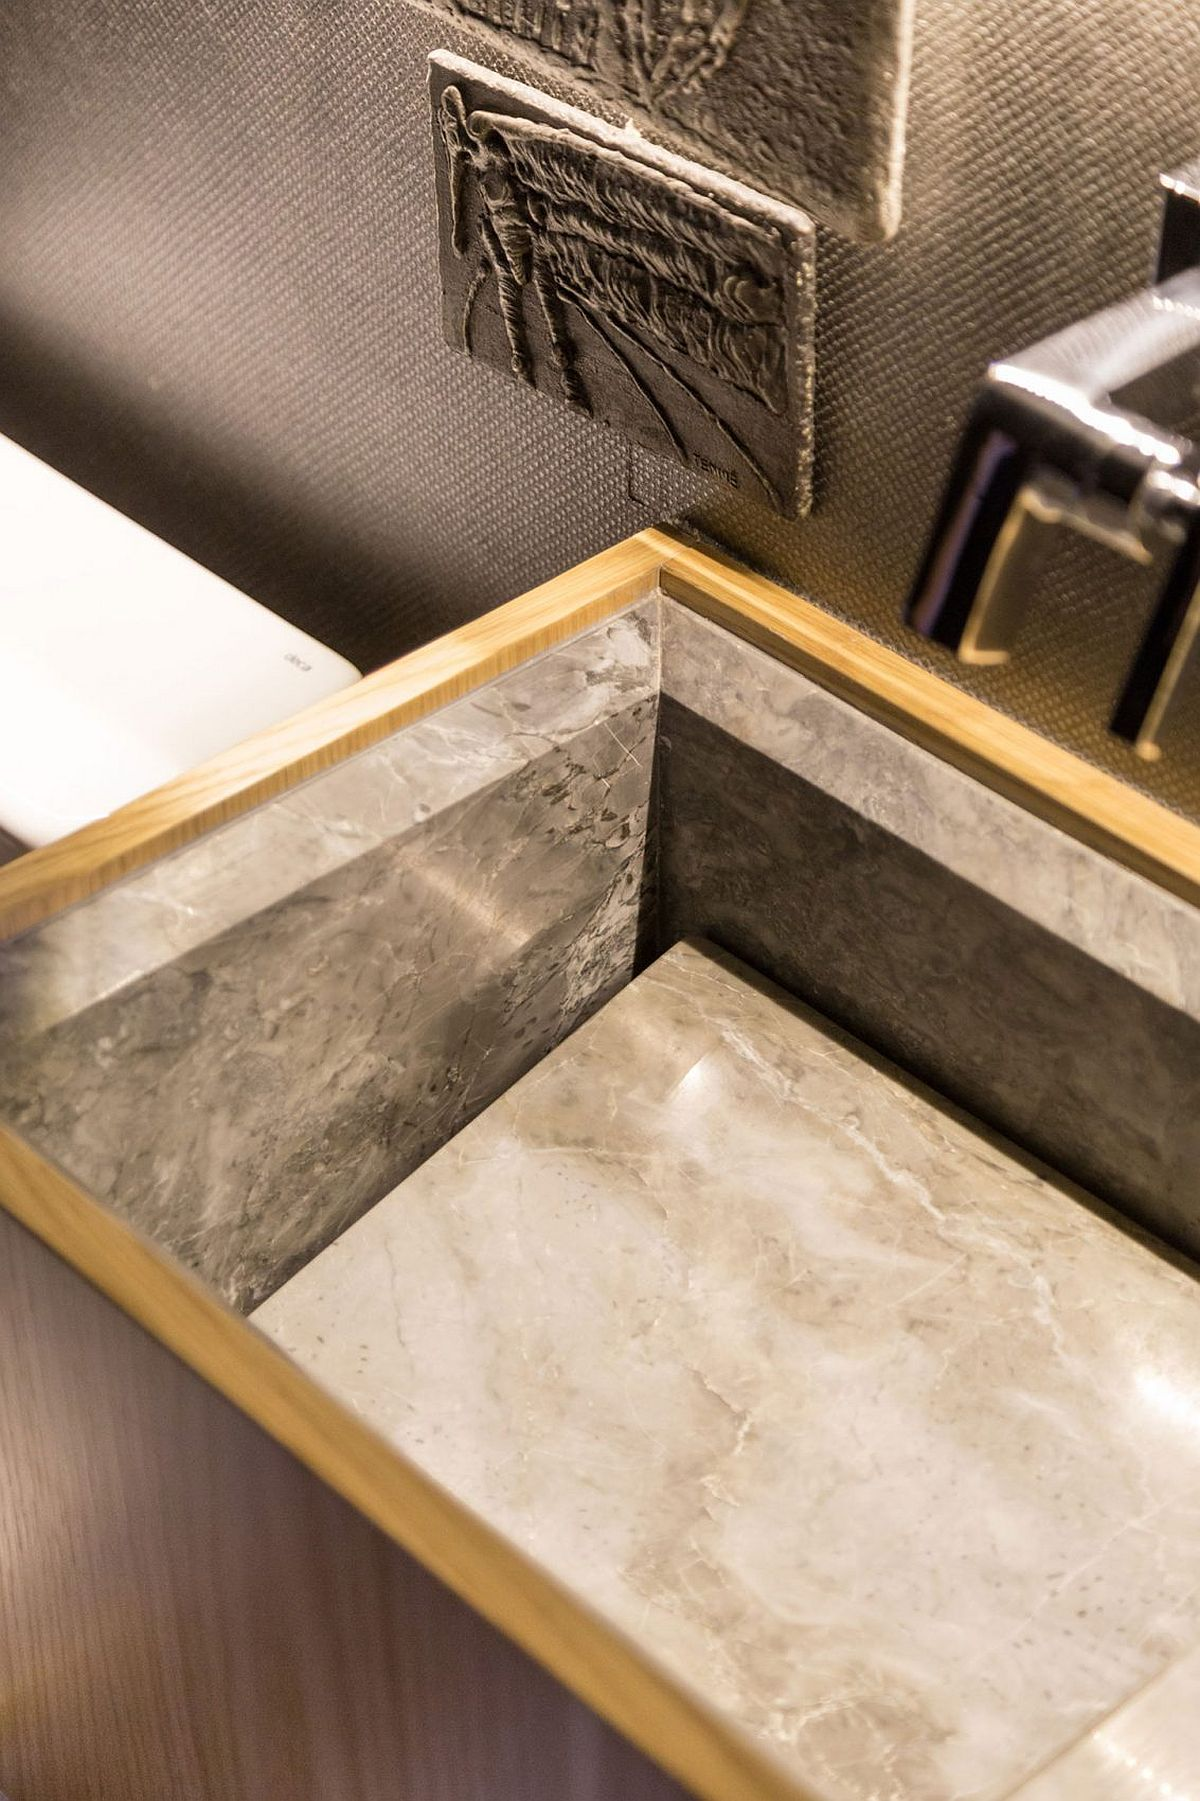 Stone sink for the bathroom with wooden vanity